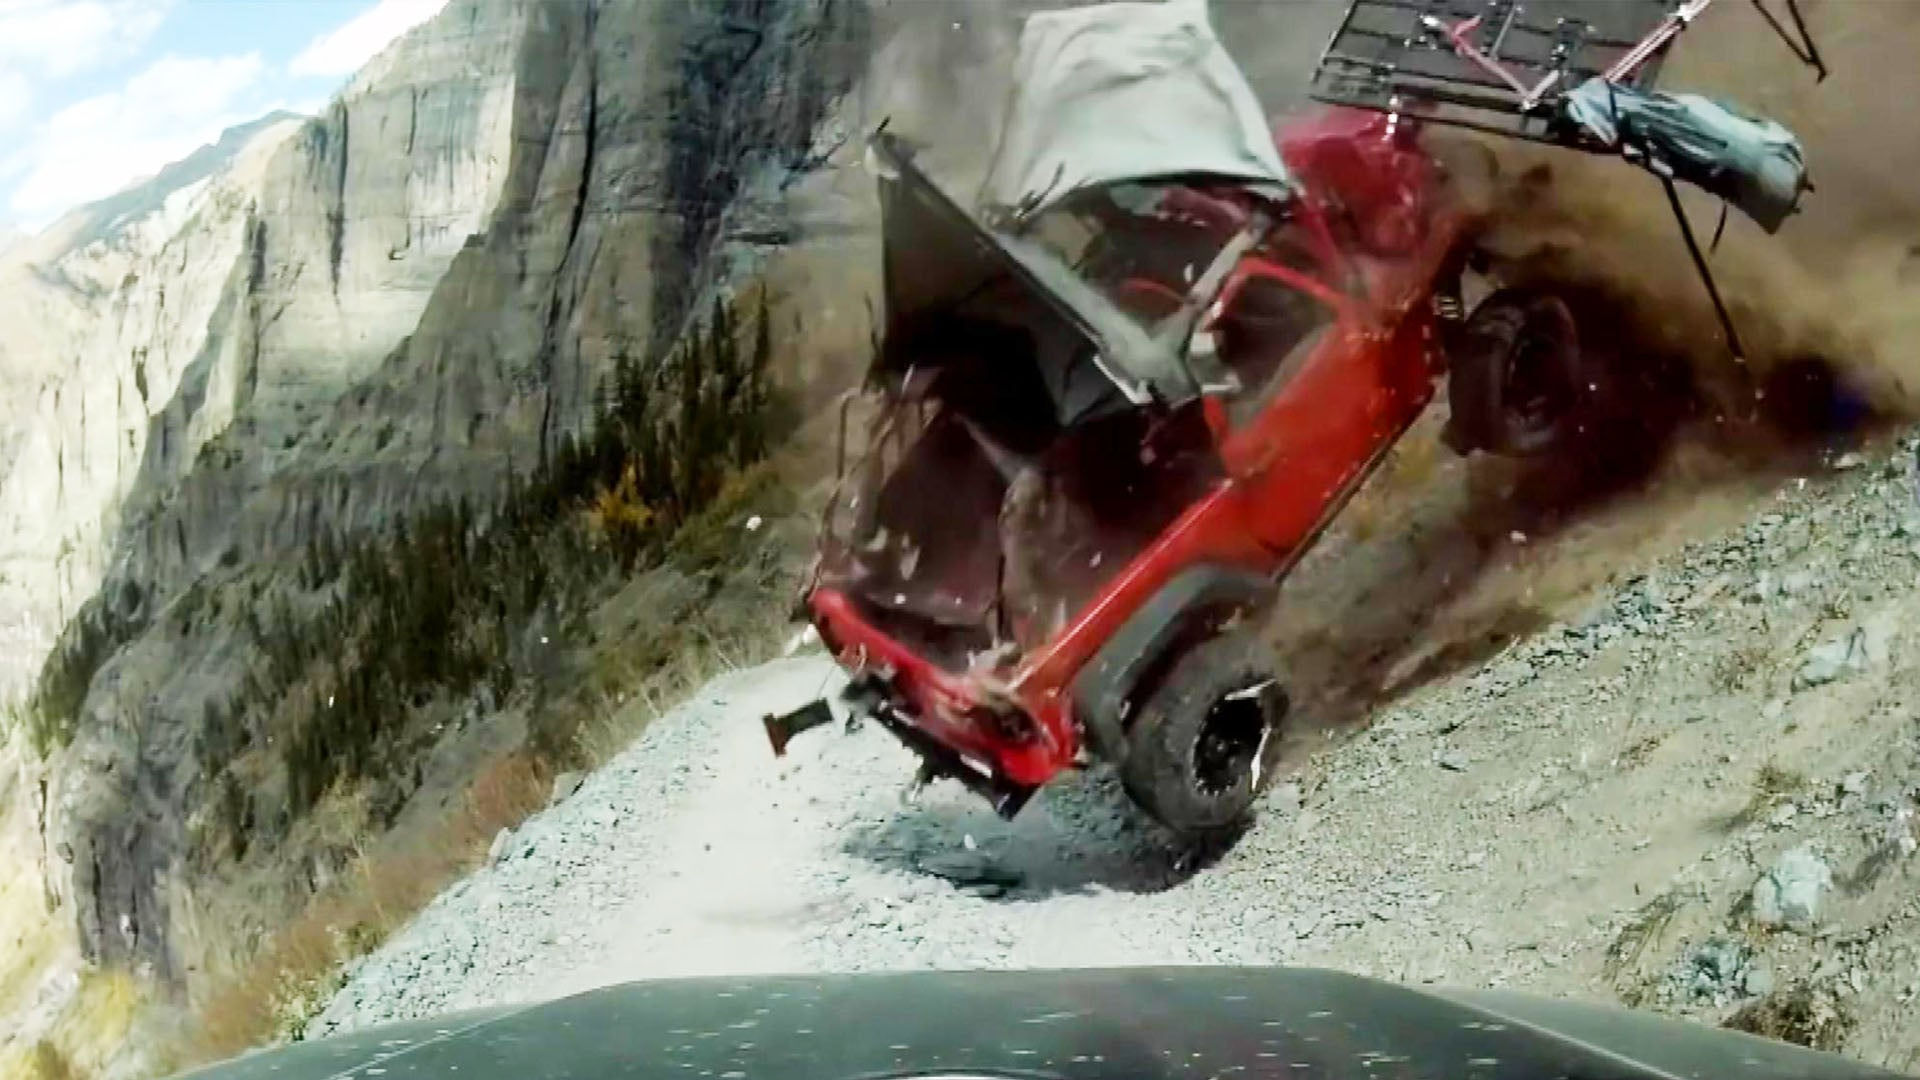 23-Year-Old Survives Terrifying Jeep Crash Down Mountain ...